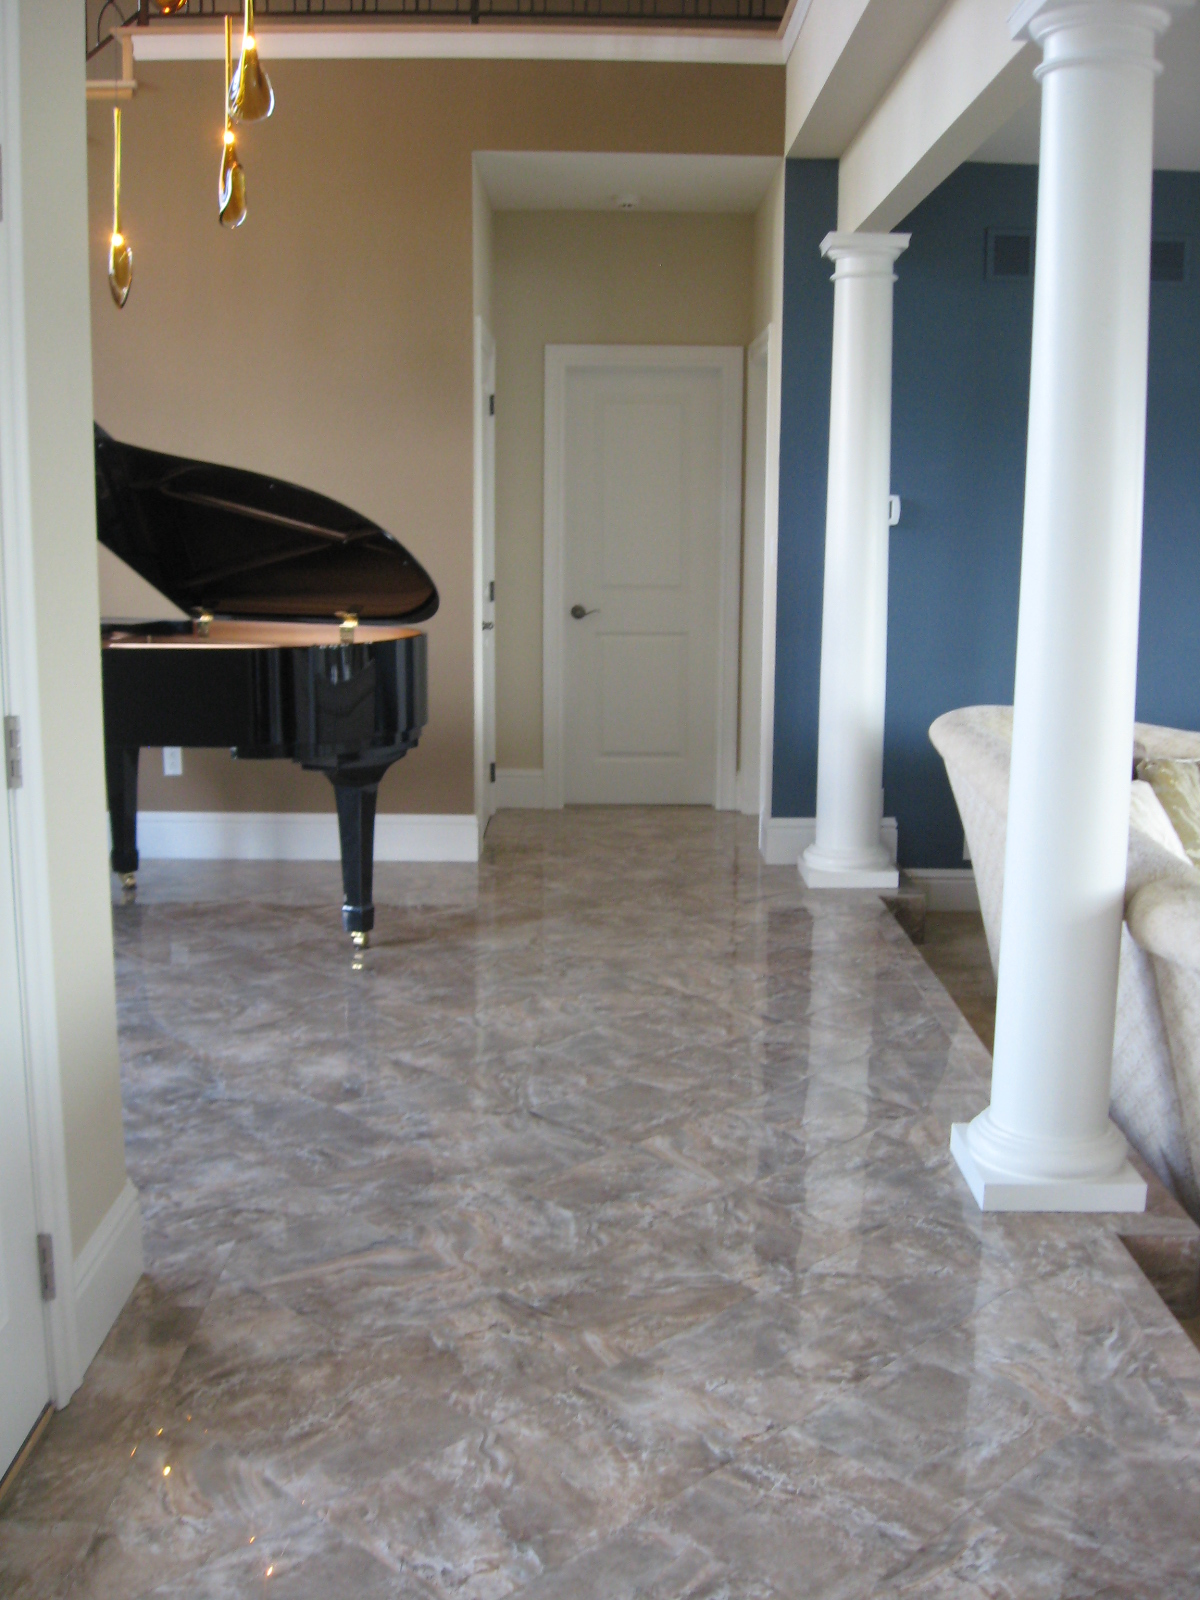 Tile that looks like marble - Breathtaking Entrance With Porcelain Tile That Looks Like Polished Marble Used For Durability And Ease Of Care